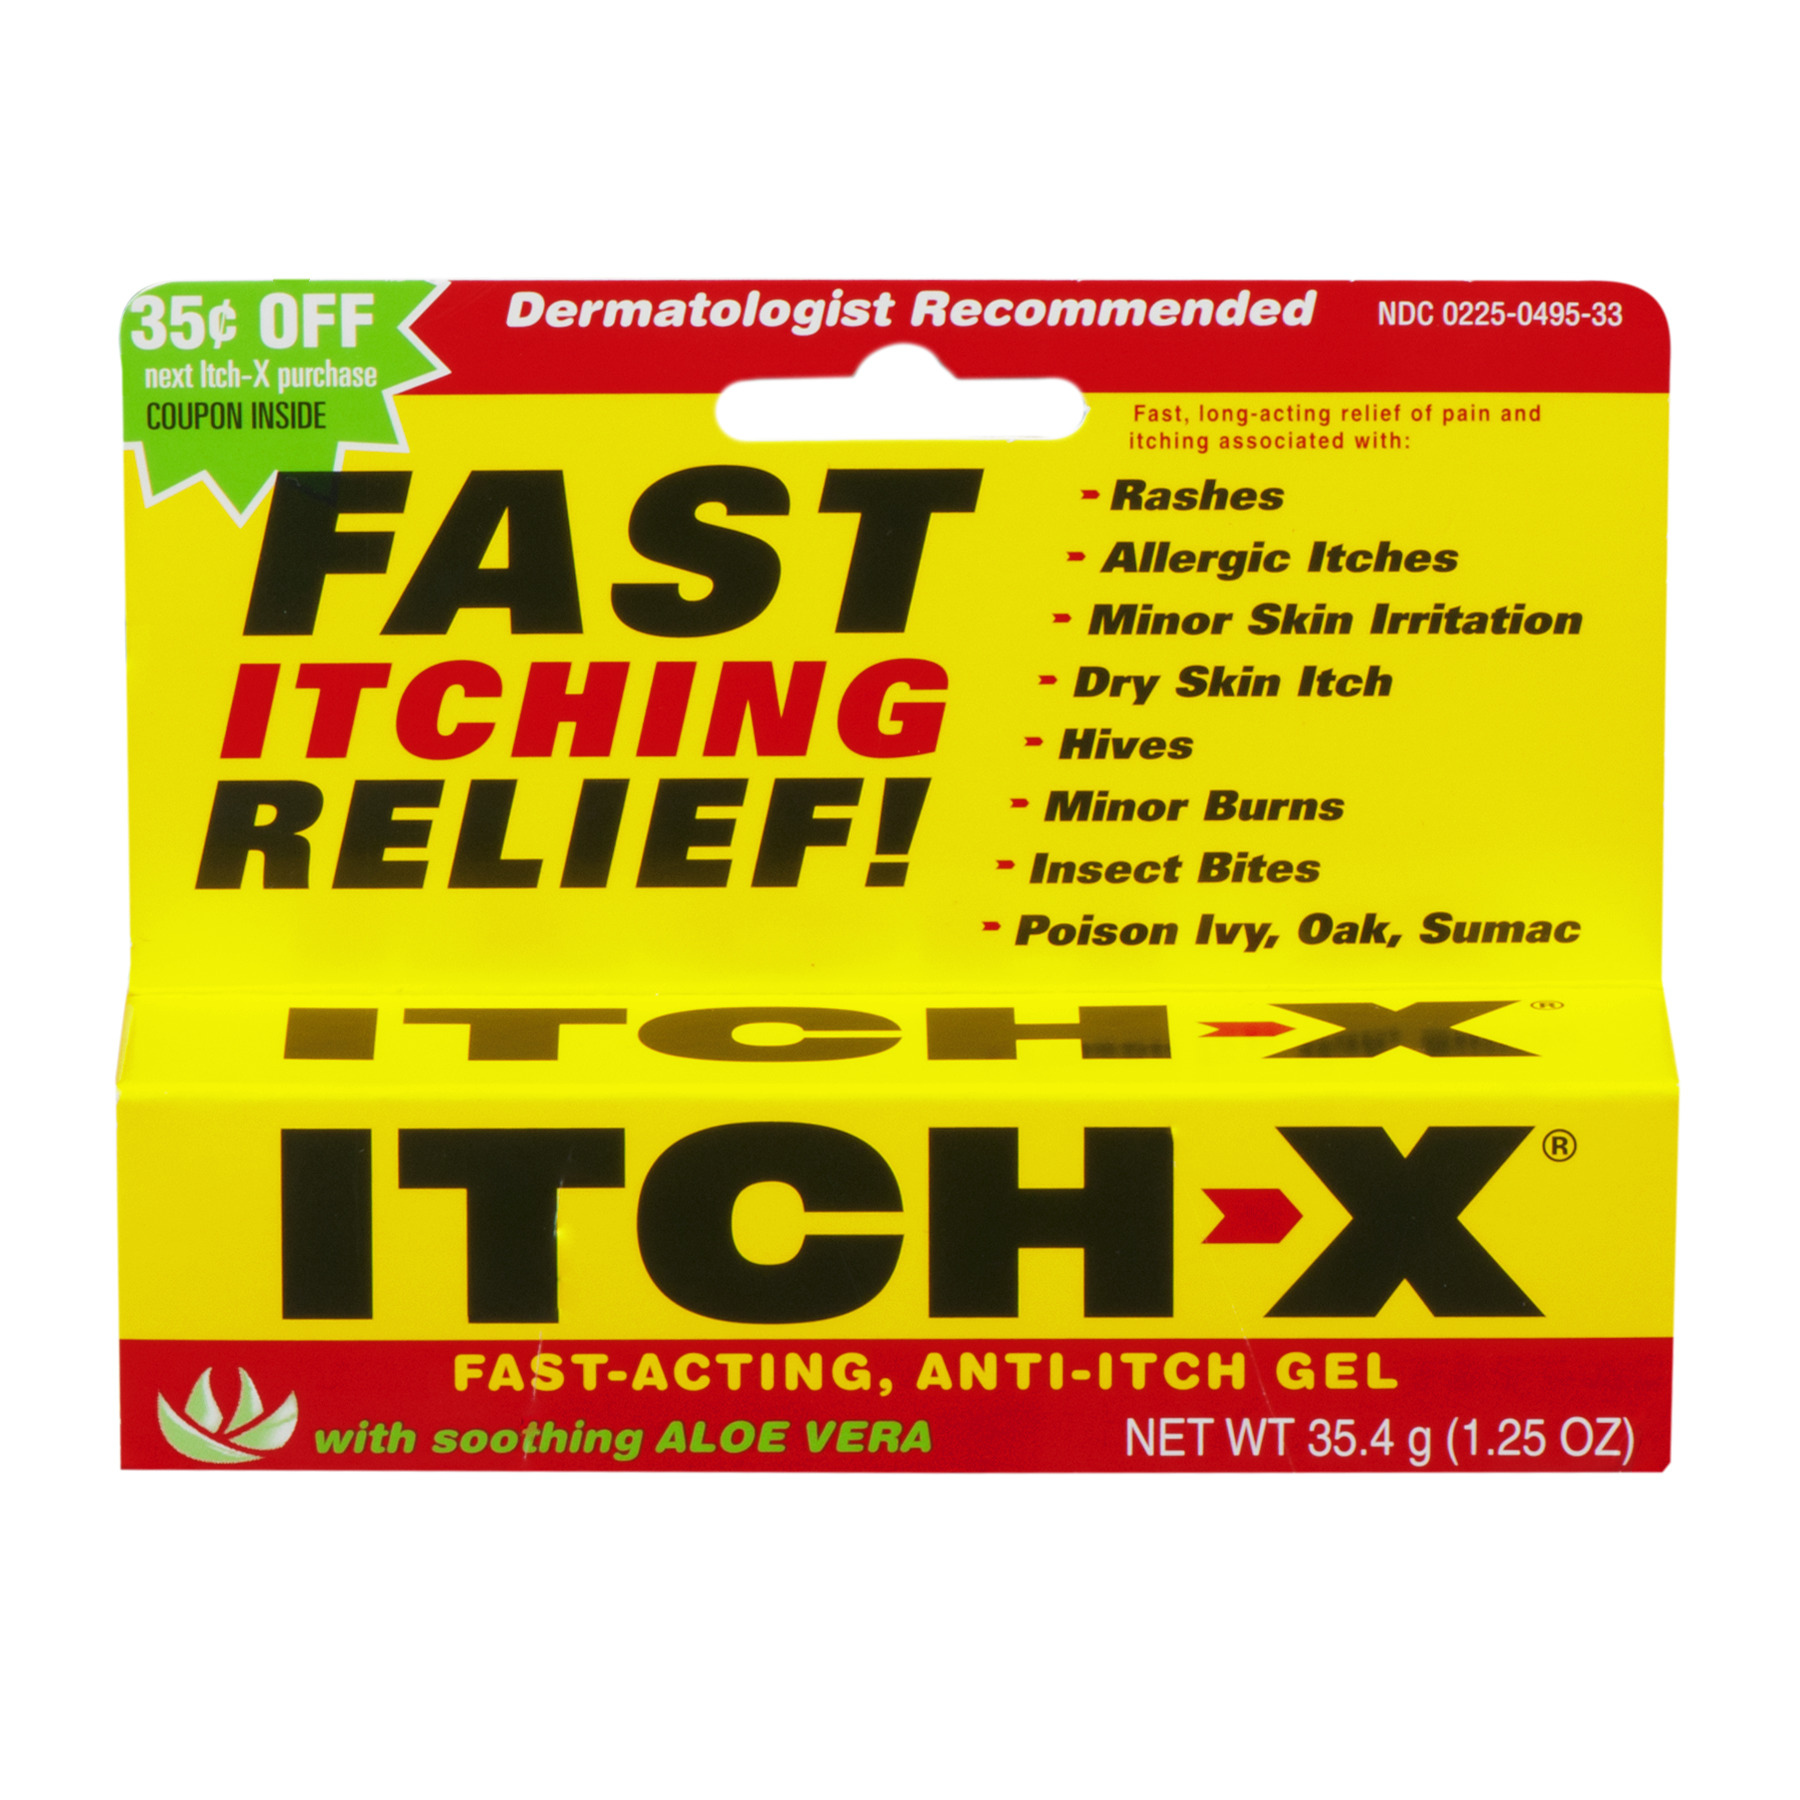 Itch-X Fast-Acting Anti-Itch Gel, 1.25 Oz